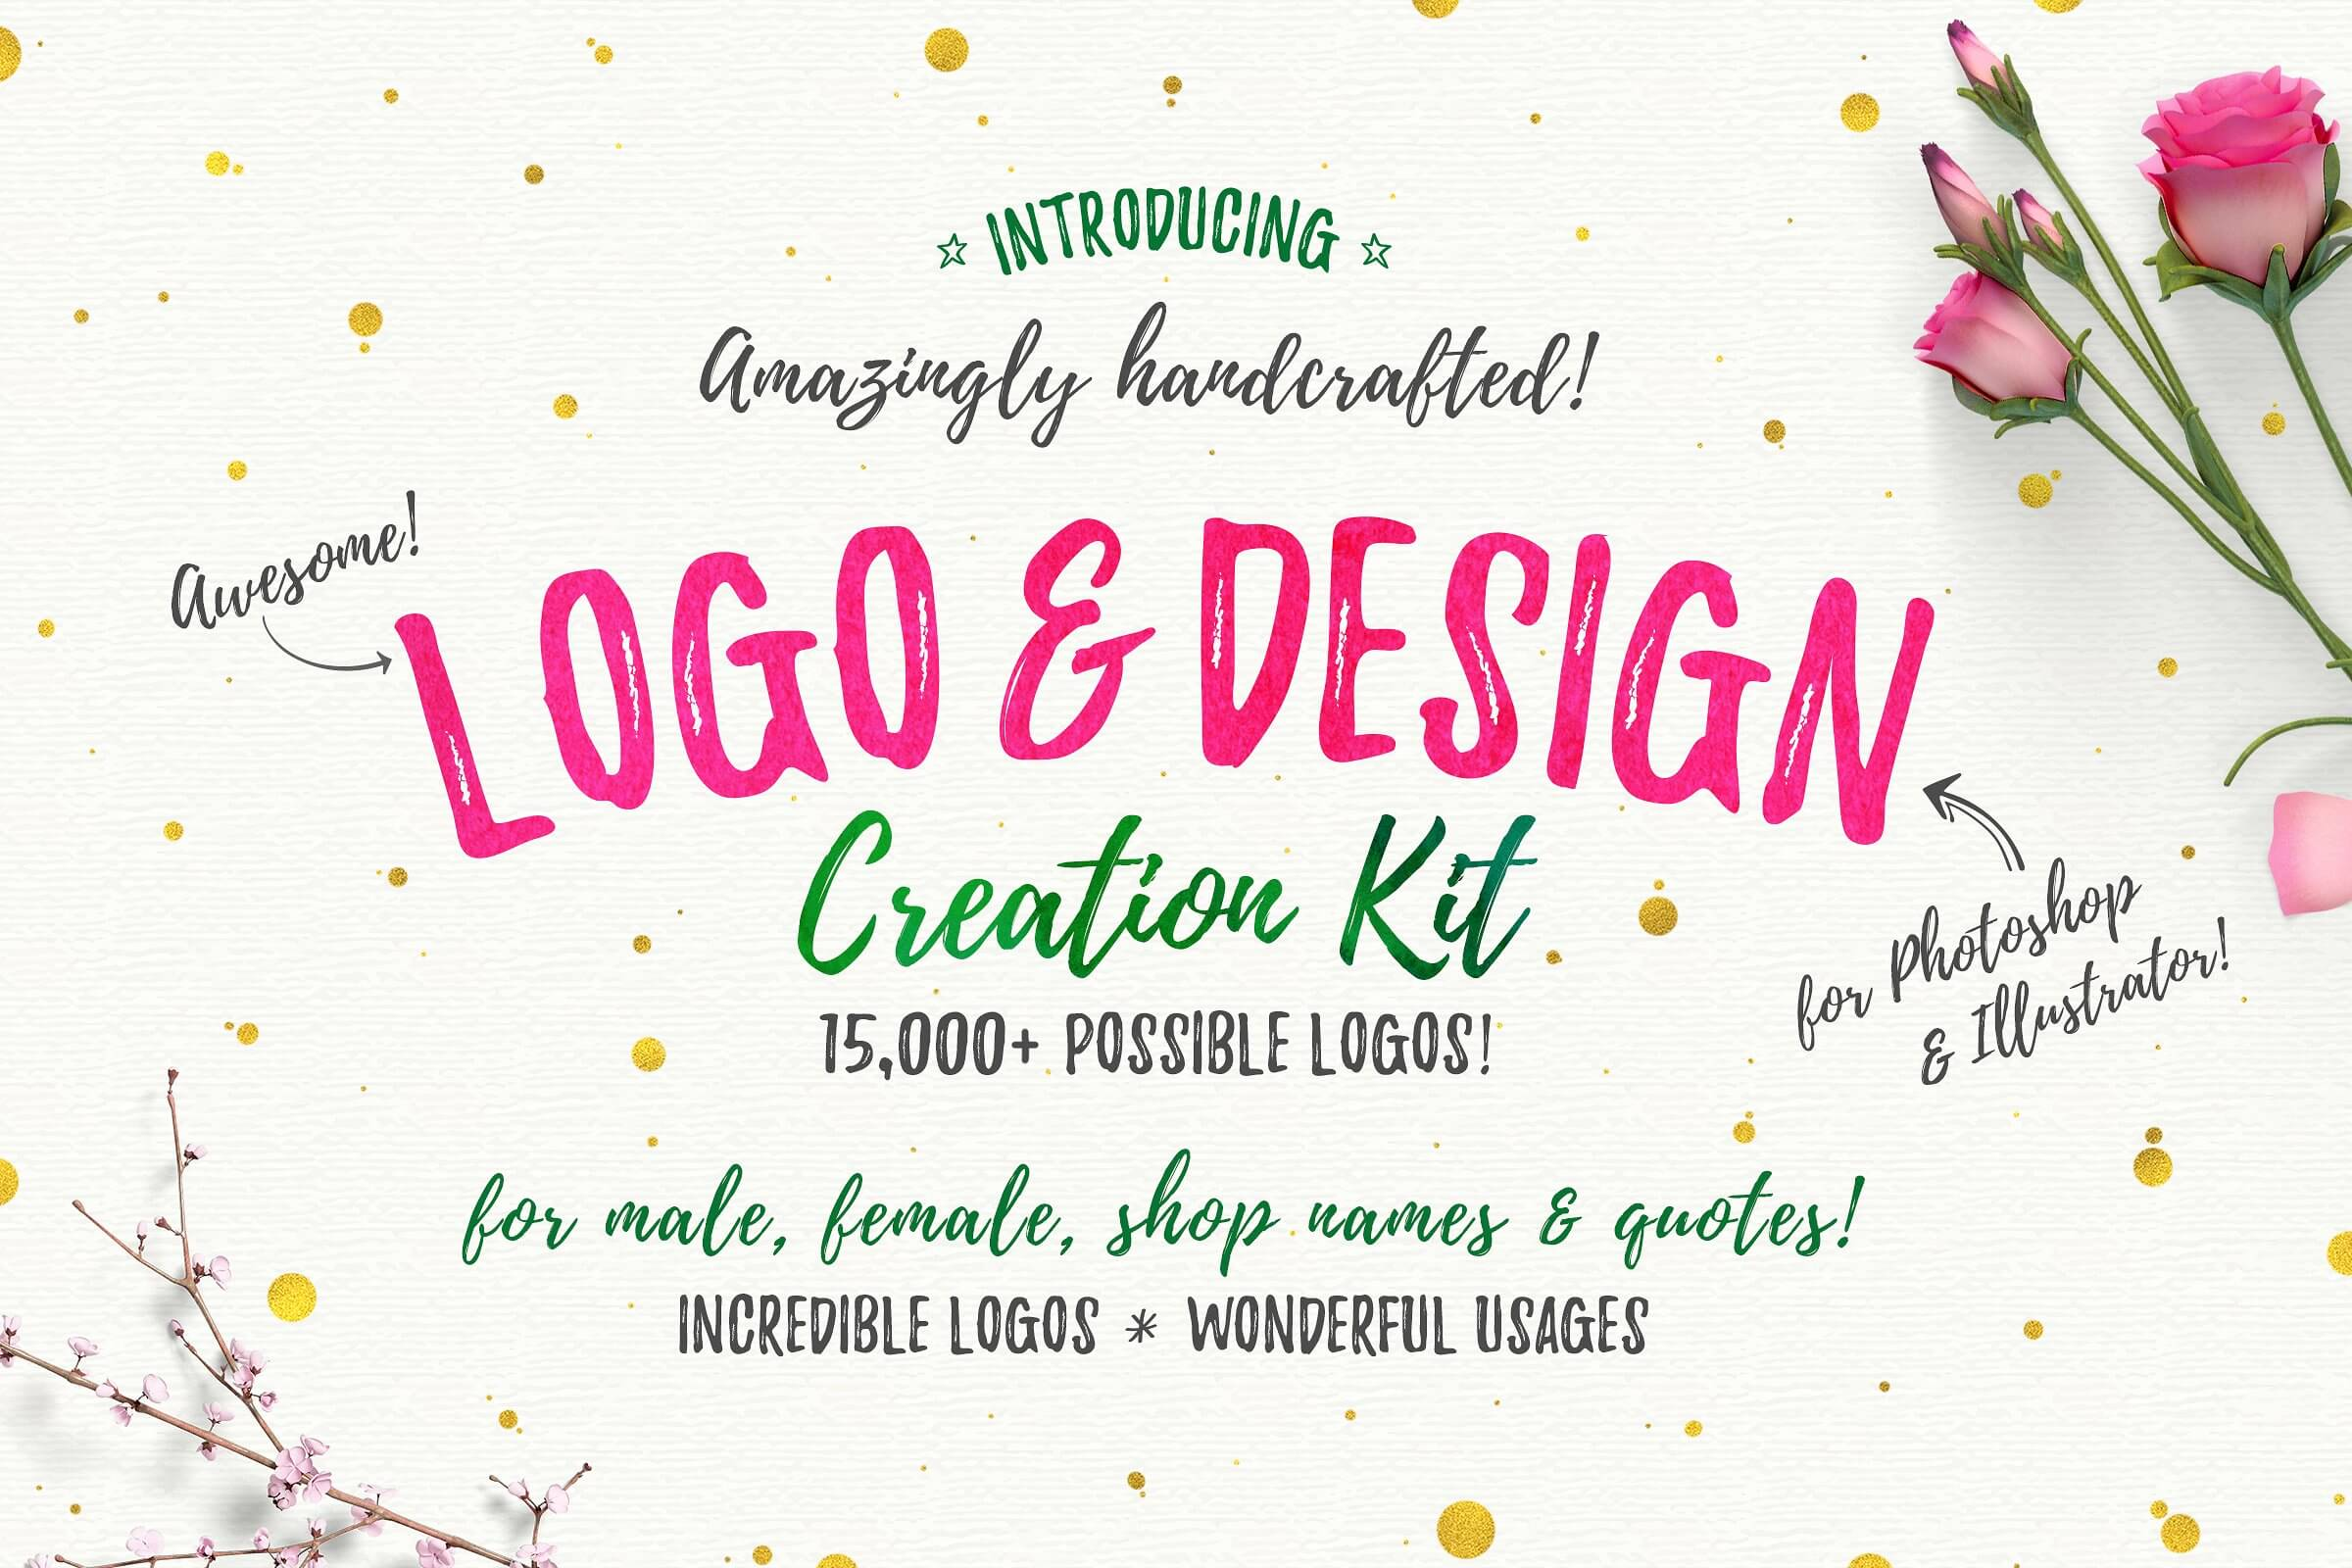 Awesome Logo & Design Creator Kit - The Everyday Designer Bundle Vol. 03